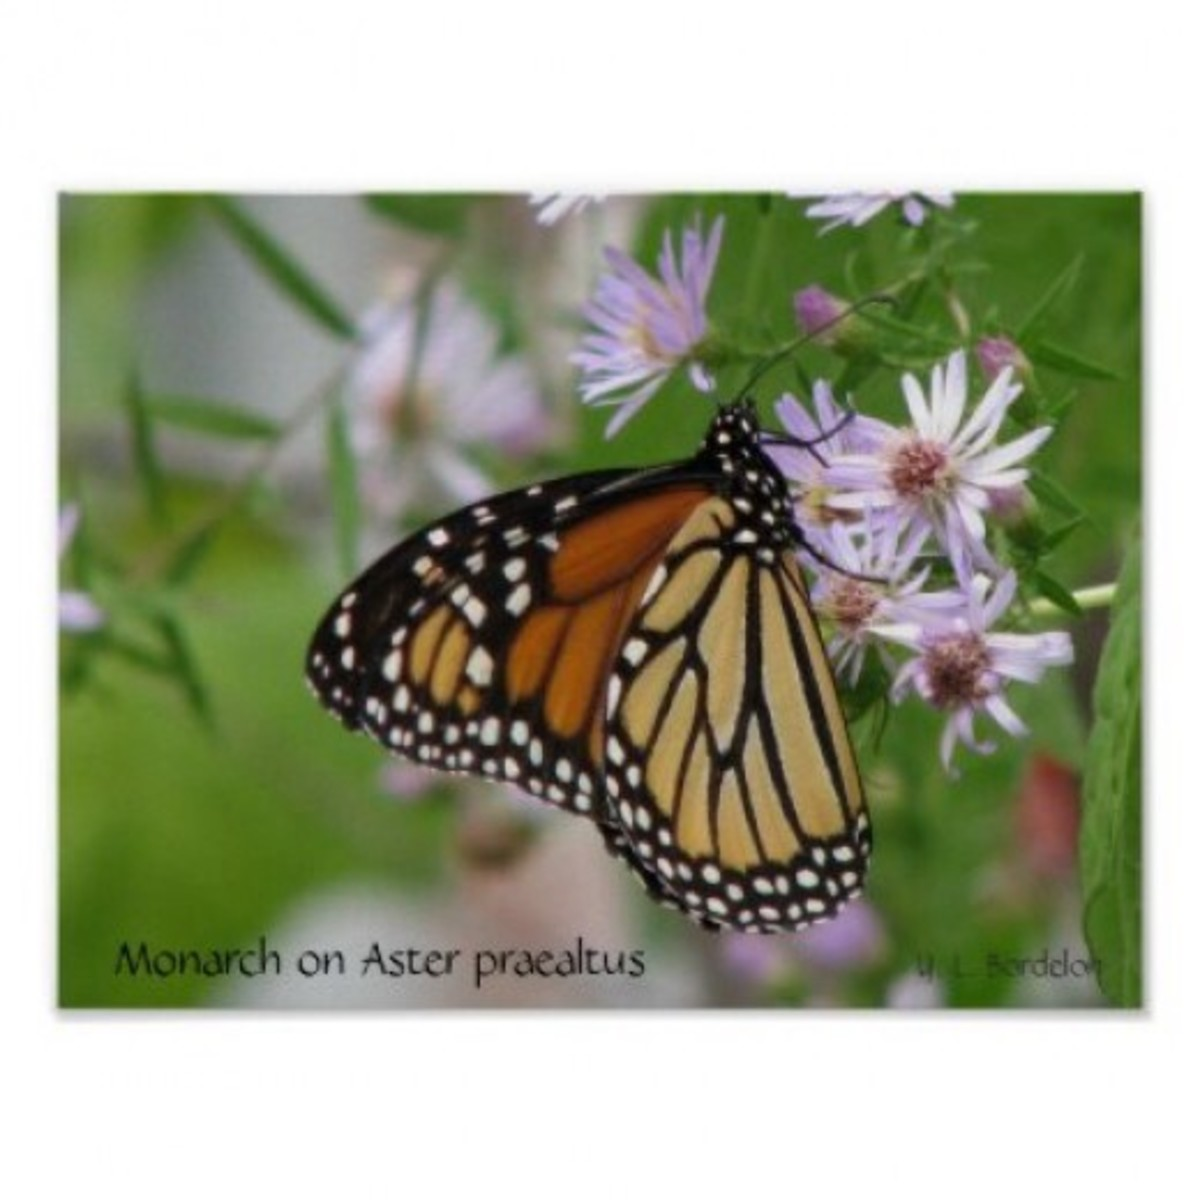 Monarchs and other butterflies flock to wild aster flowers.